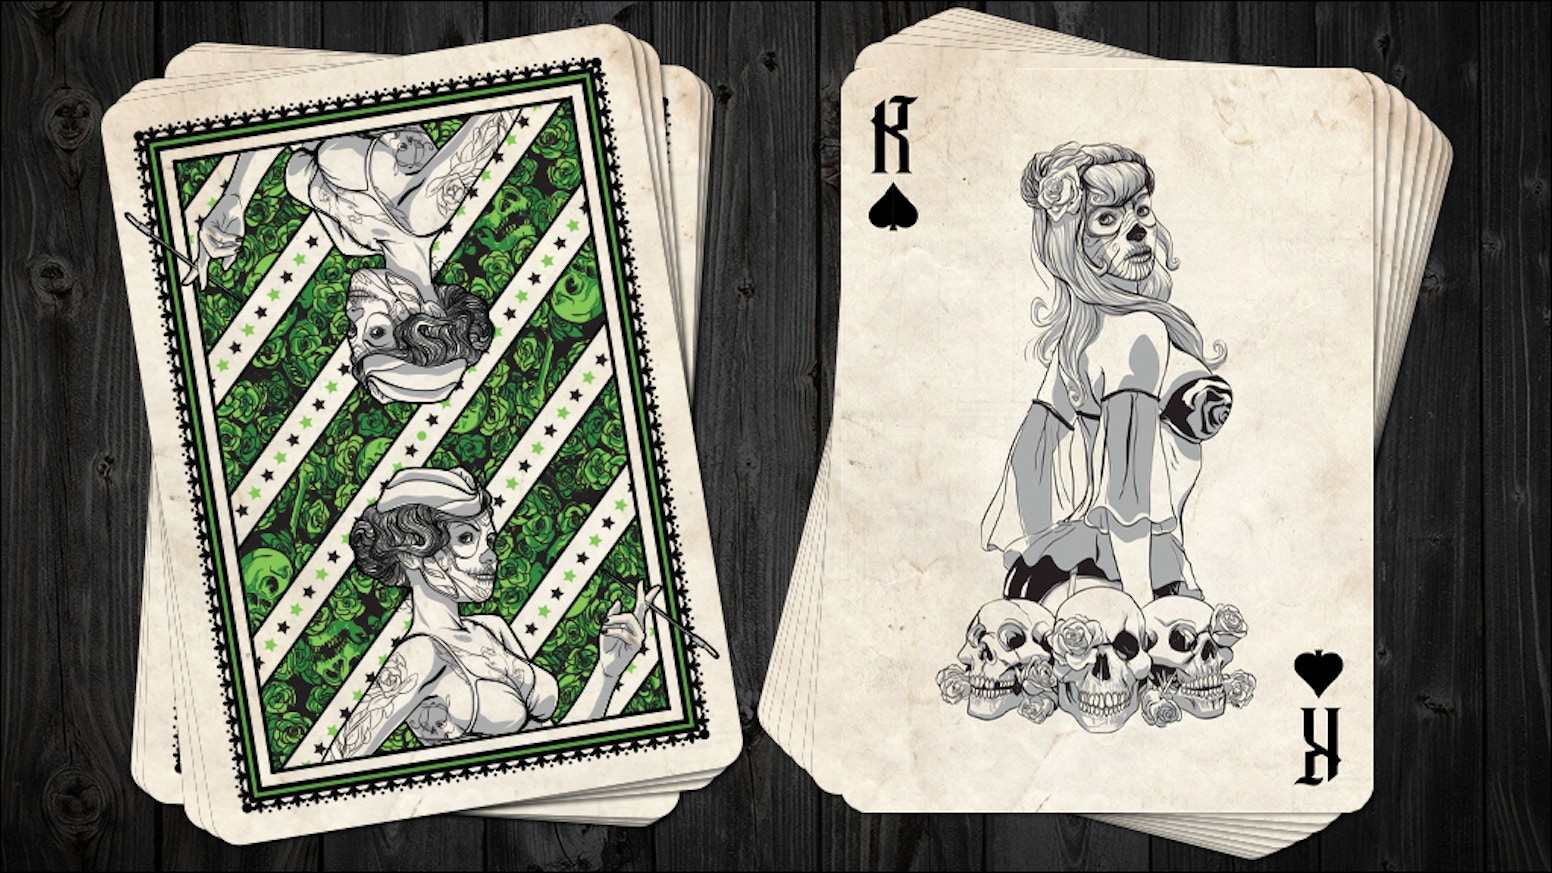 Classic Pin-up Playing Cards inspired by The Day of the Dead. Hand drawn illustrations.